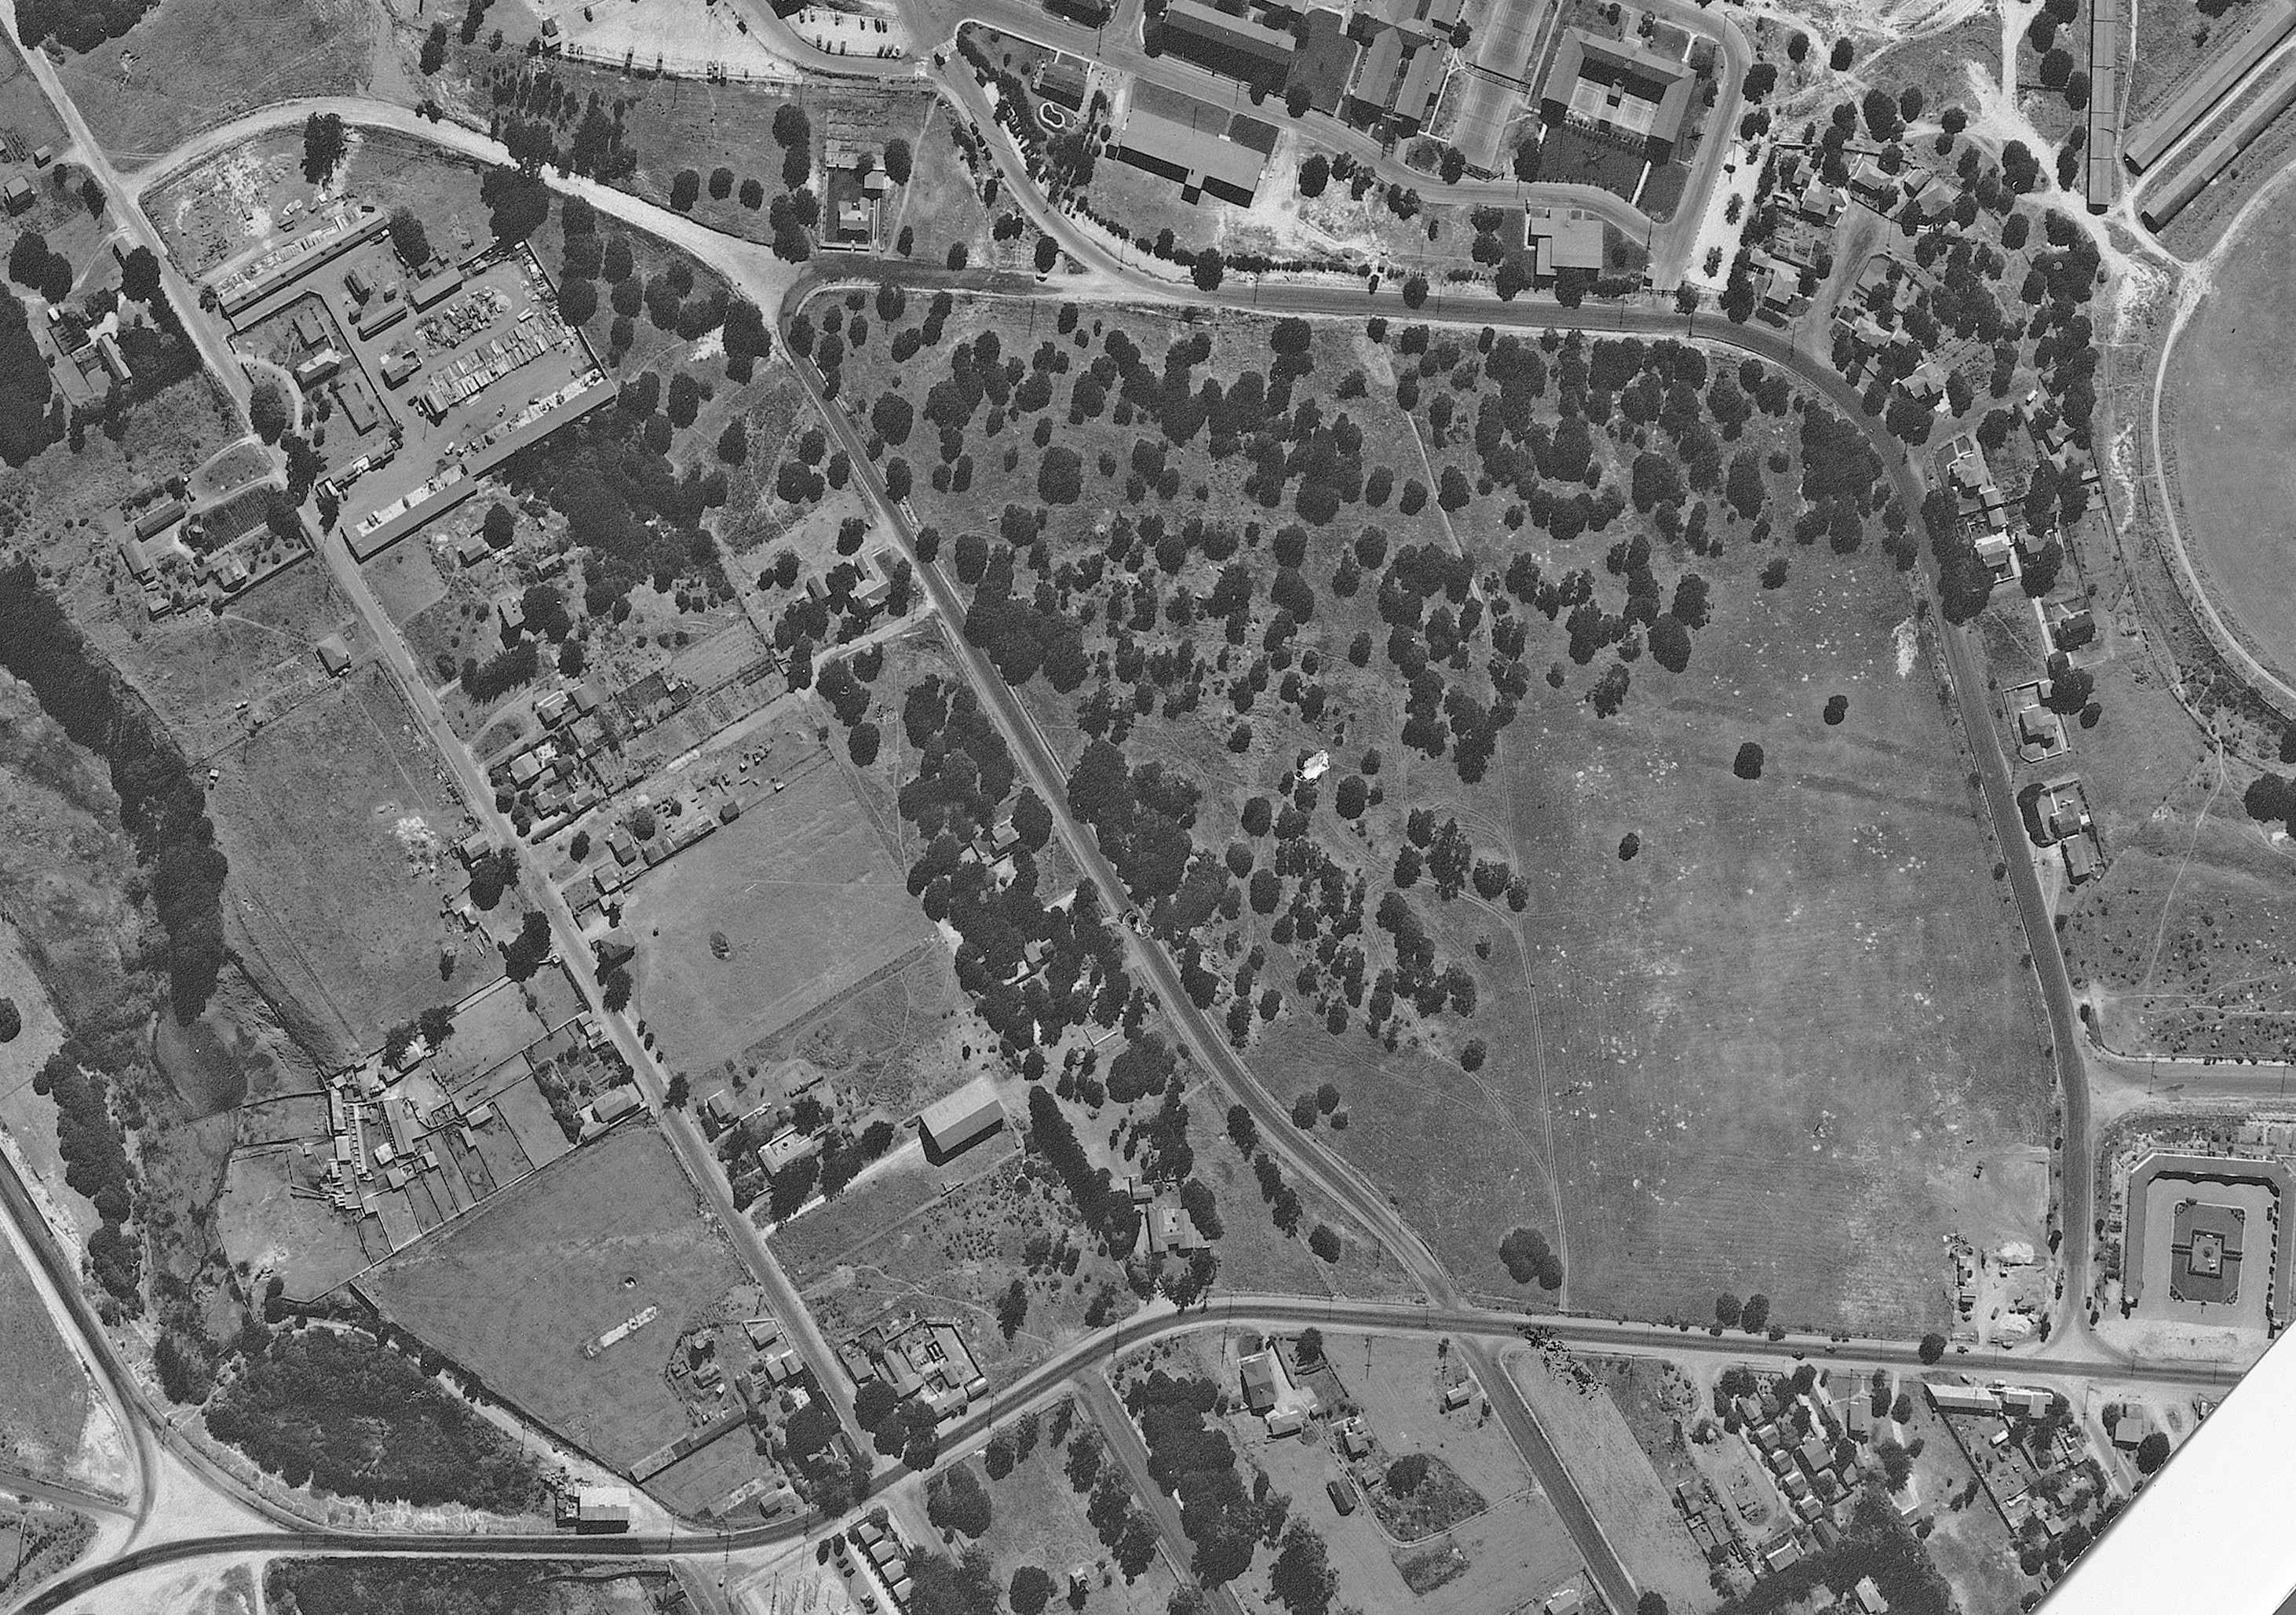 1945 aerial photograph courtesy of UC Santa Barbara Library, Special Collections.